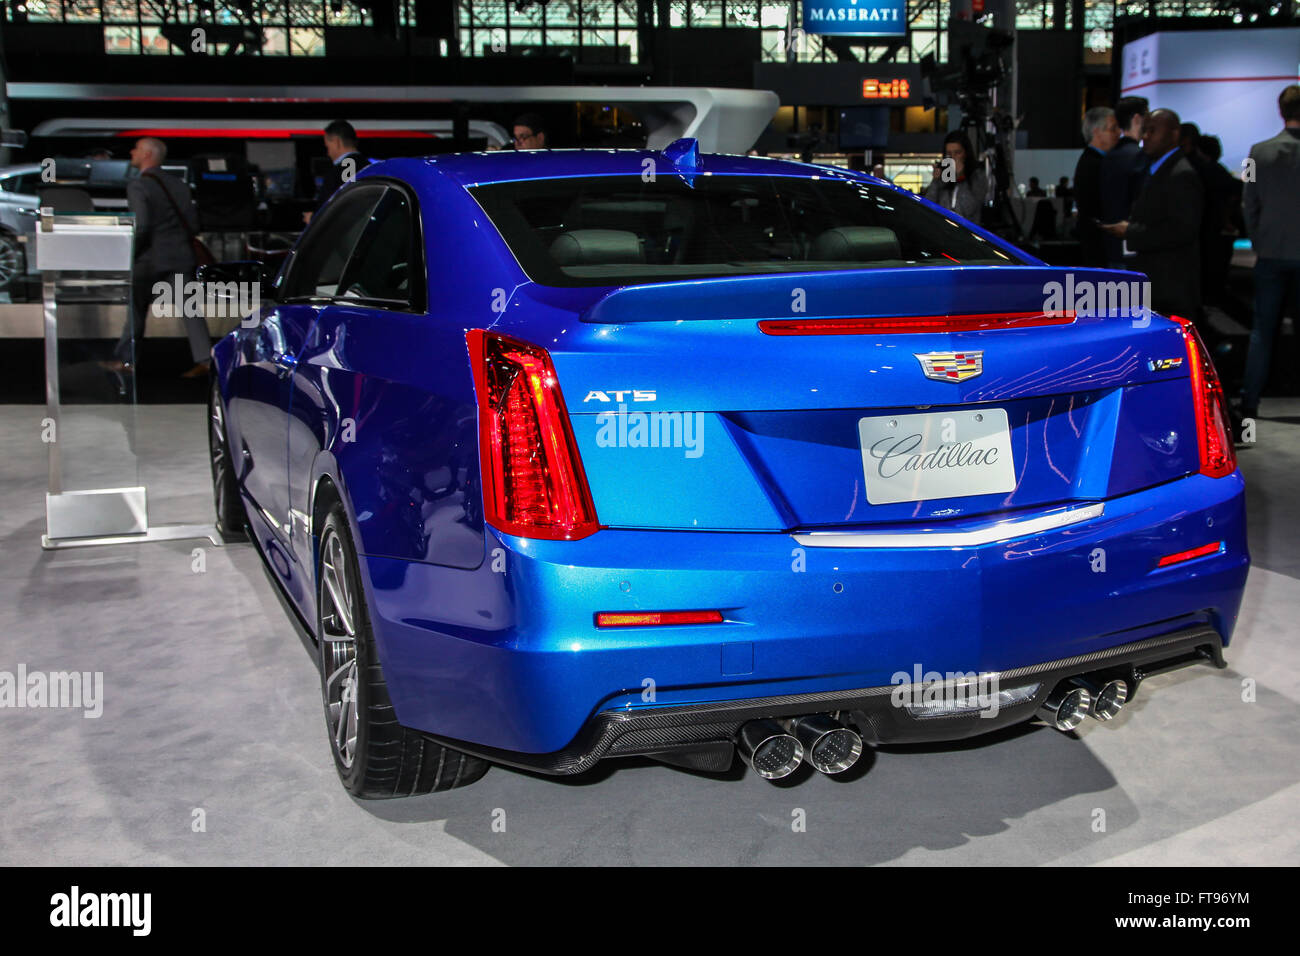 Manhattan, New York, USA. 23rd Mar, 2016. A Cadillac ATS-V shown at the New York International Auto Show 2016, at - Stock Image